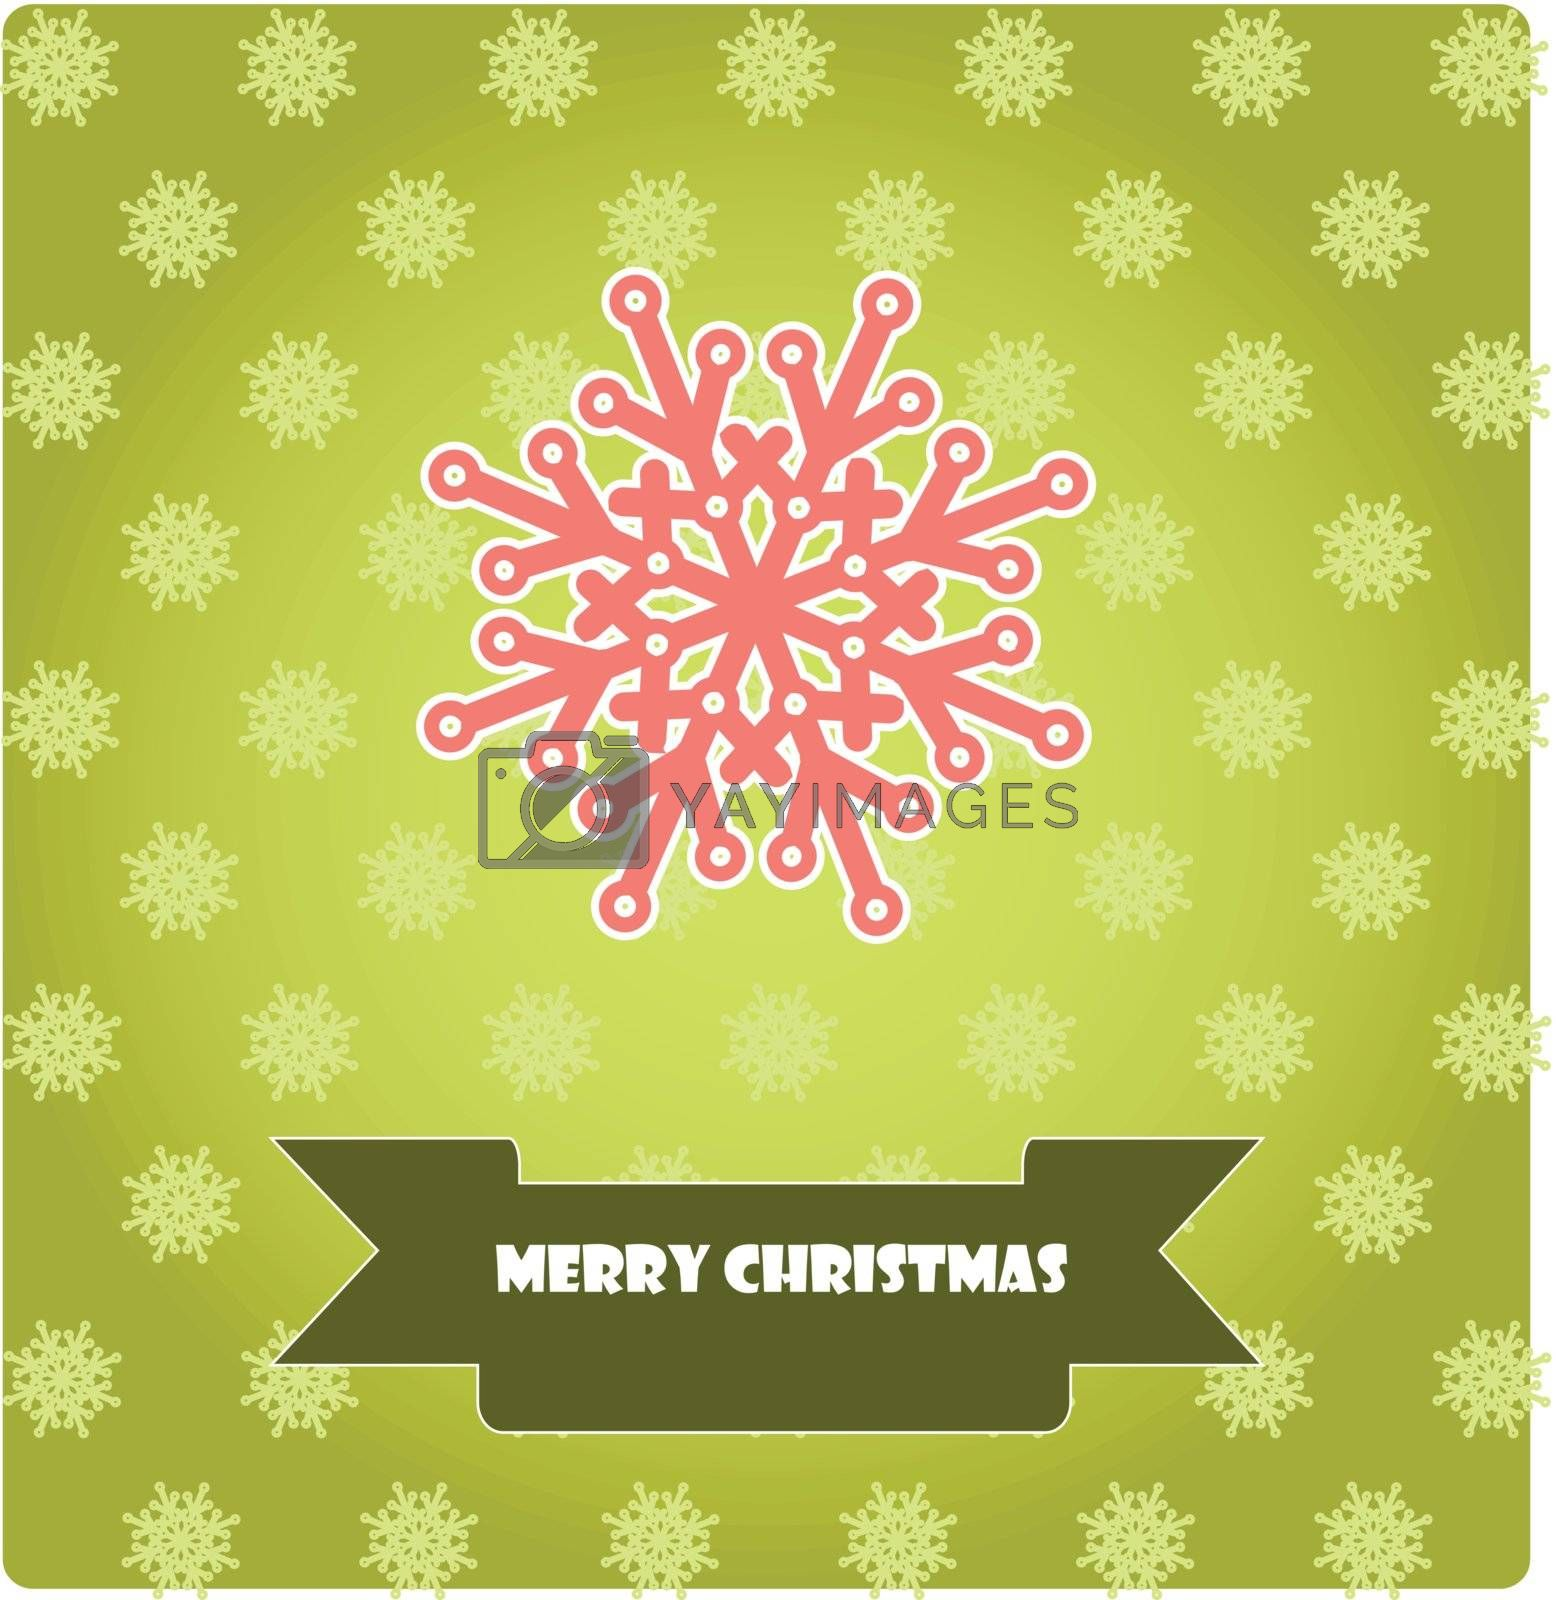 Merry Christmas card with a snowflake on the green background